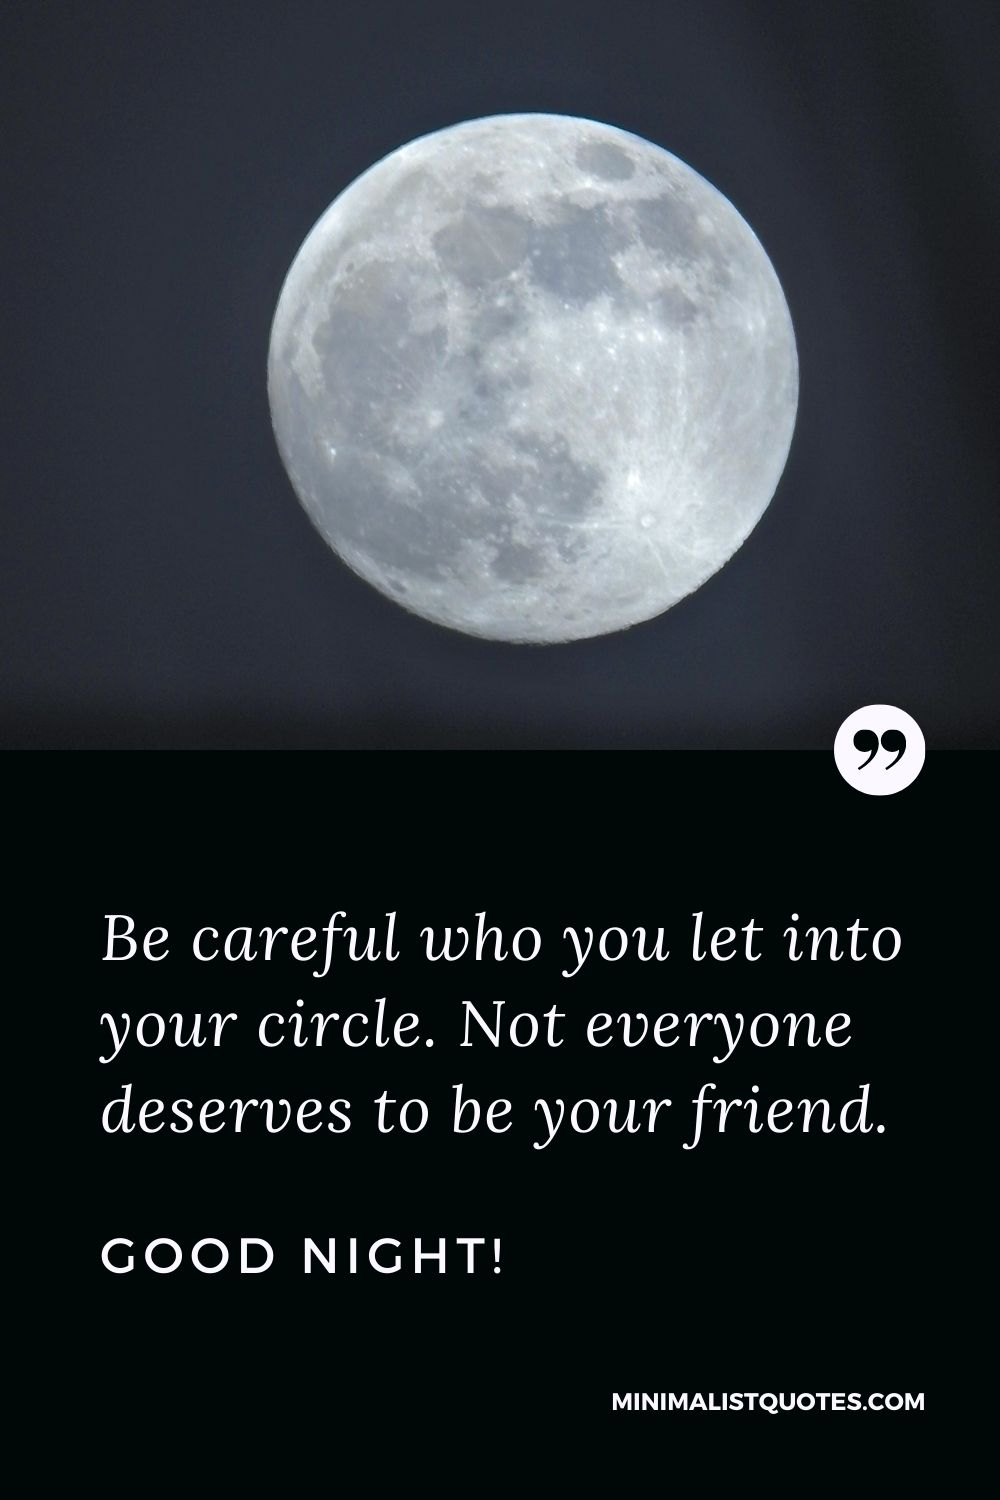 Good Night Quote, Wish & Message With Image: Be careful who you let into your circle. Not everyone deserves to be your friend. Good Night!